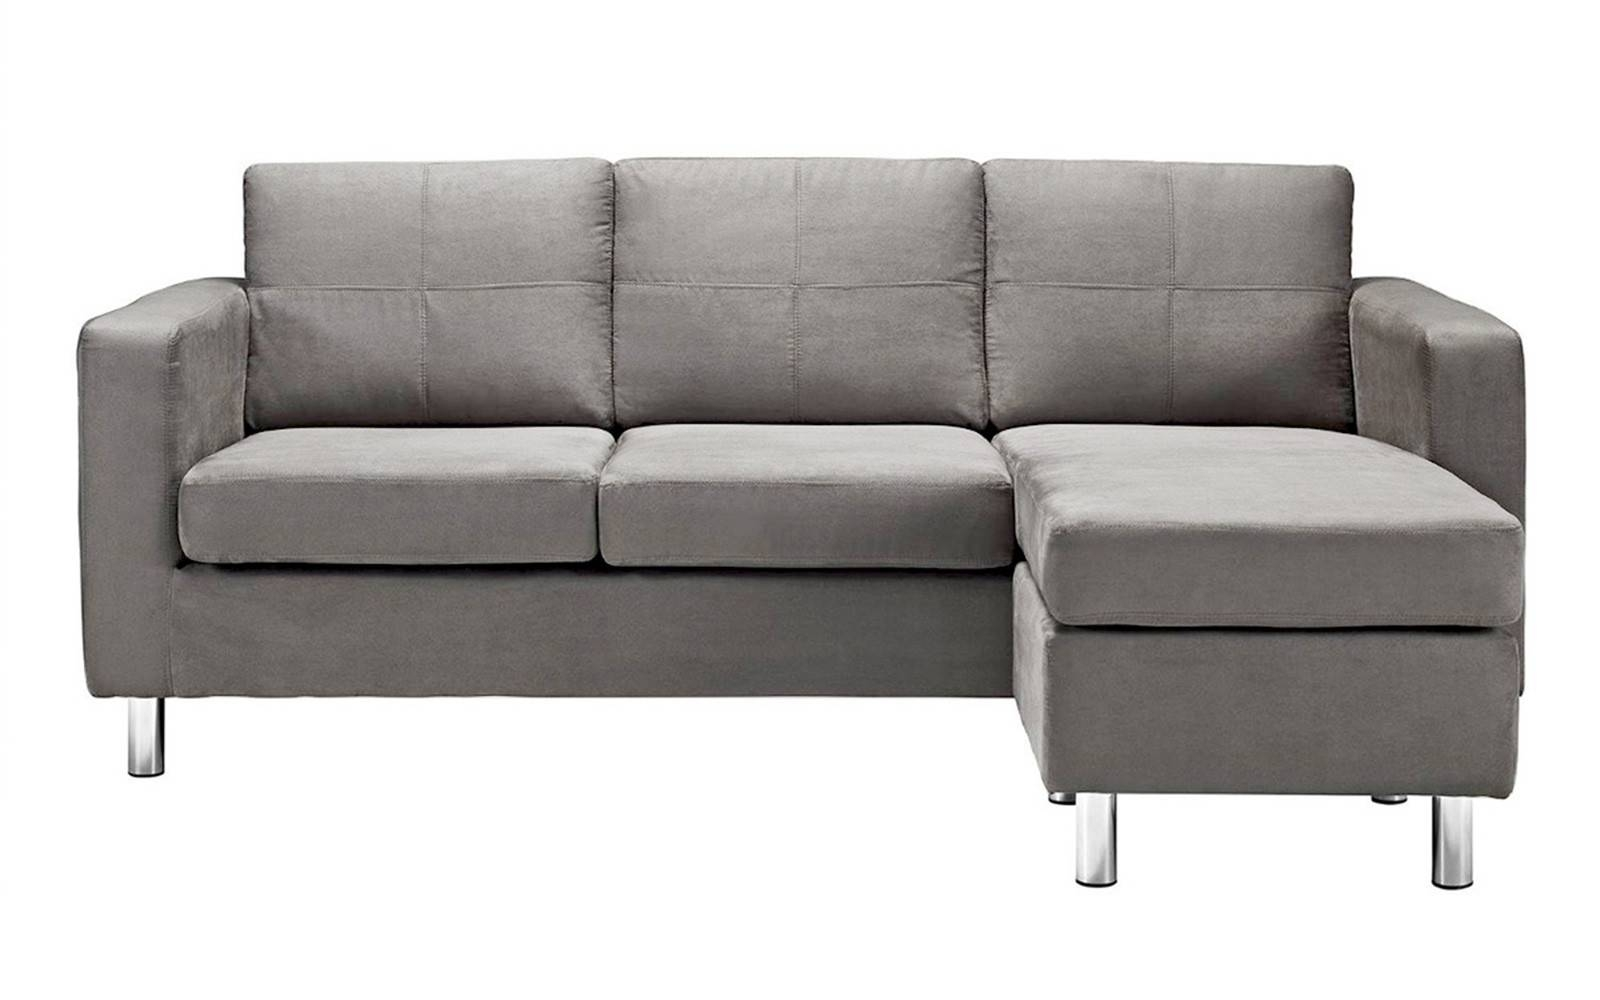 Modern Reversible Small Space Configurable Microfiber Sectional with regard to Modern Small Sectional Sofas (Image 8 of 15)